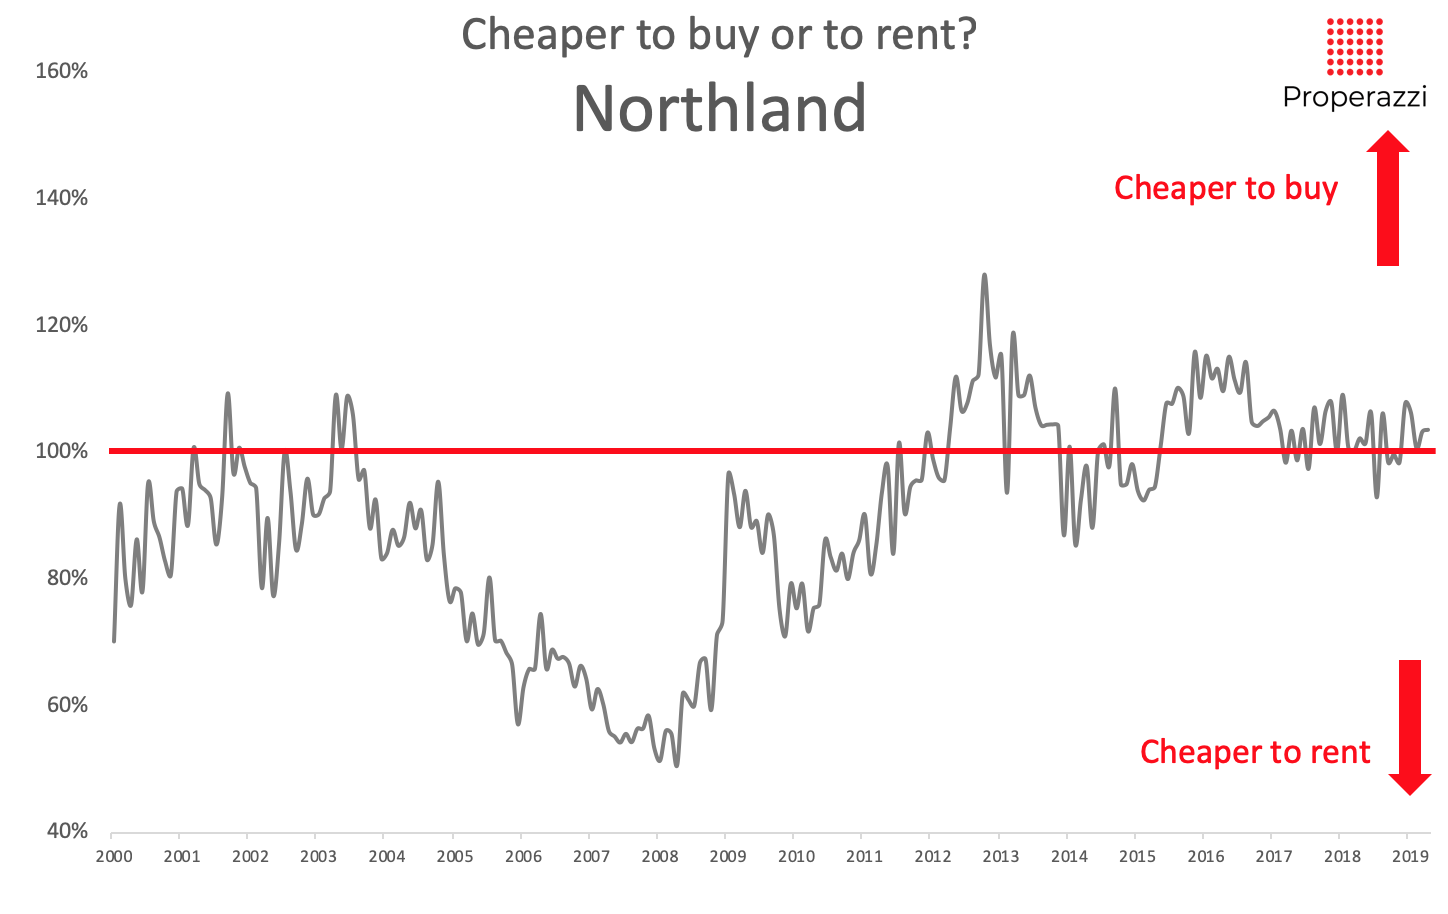 To rent or to buy - Northland May 2019